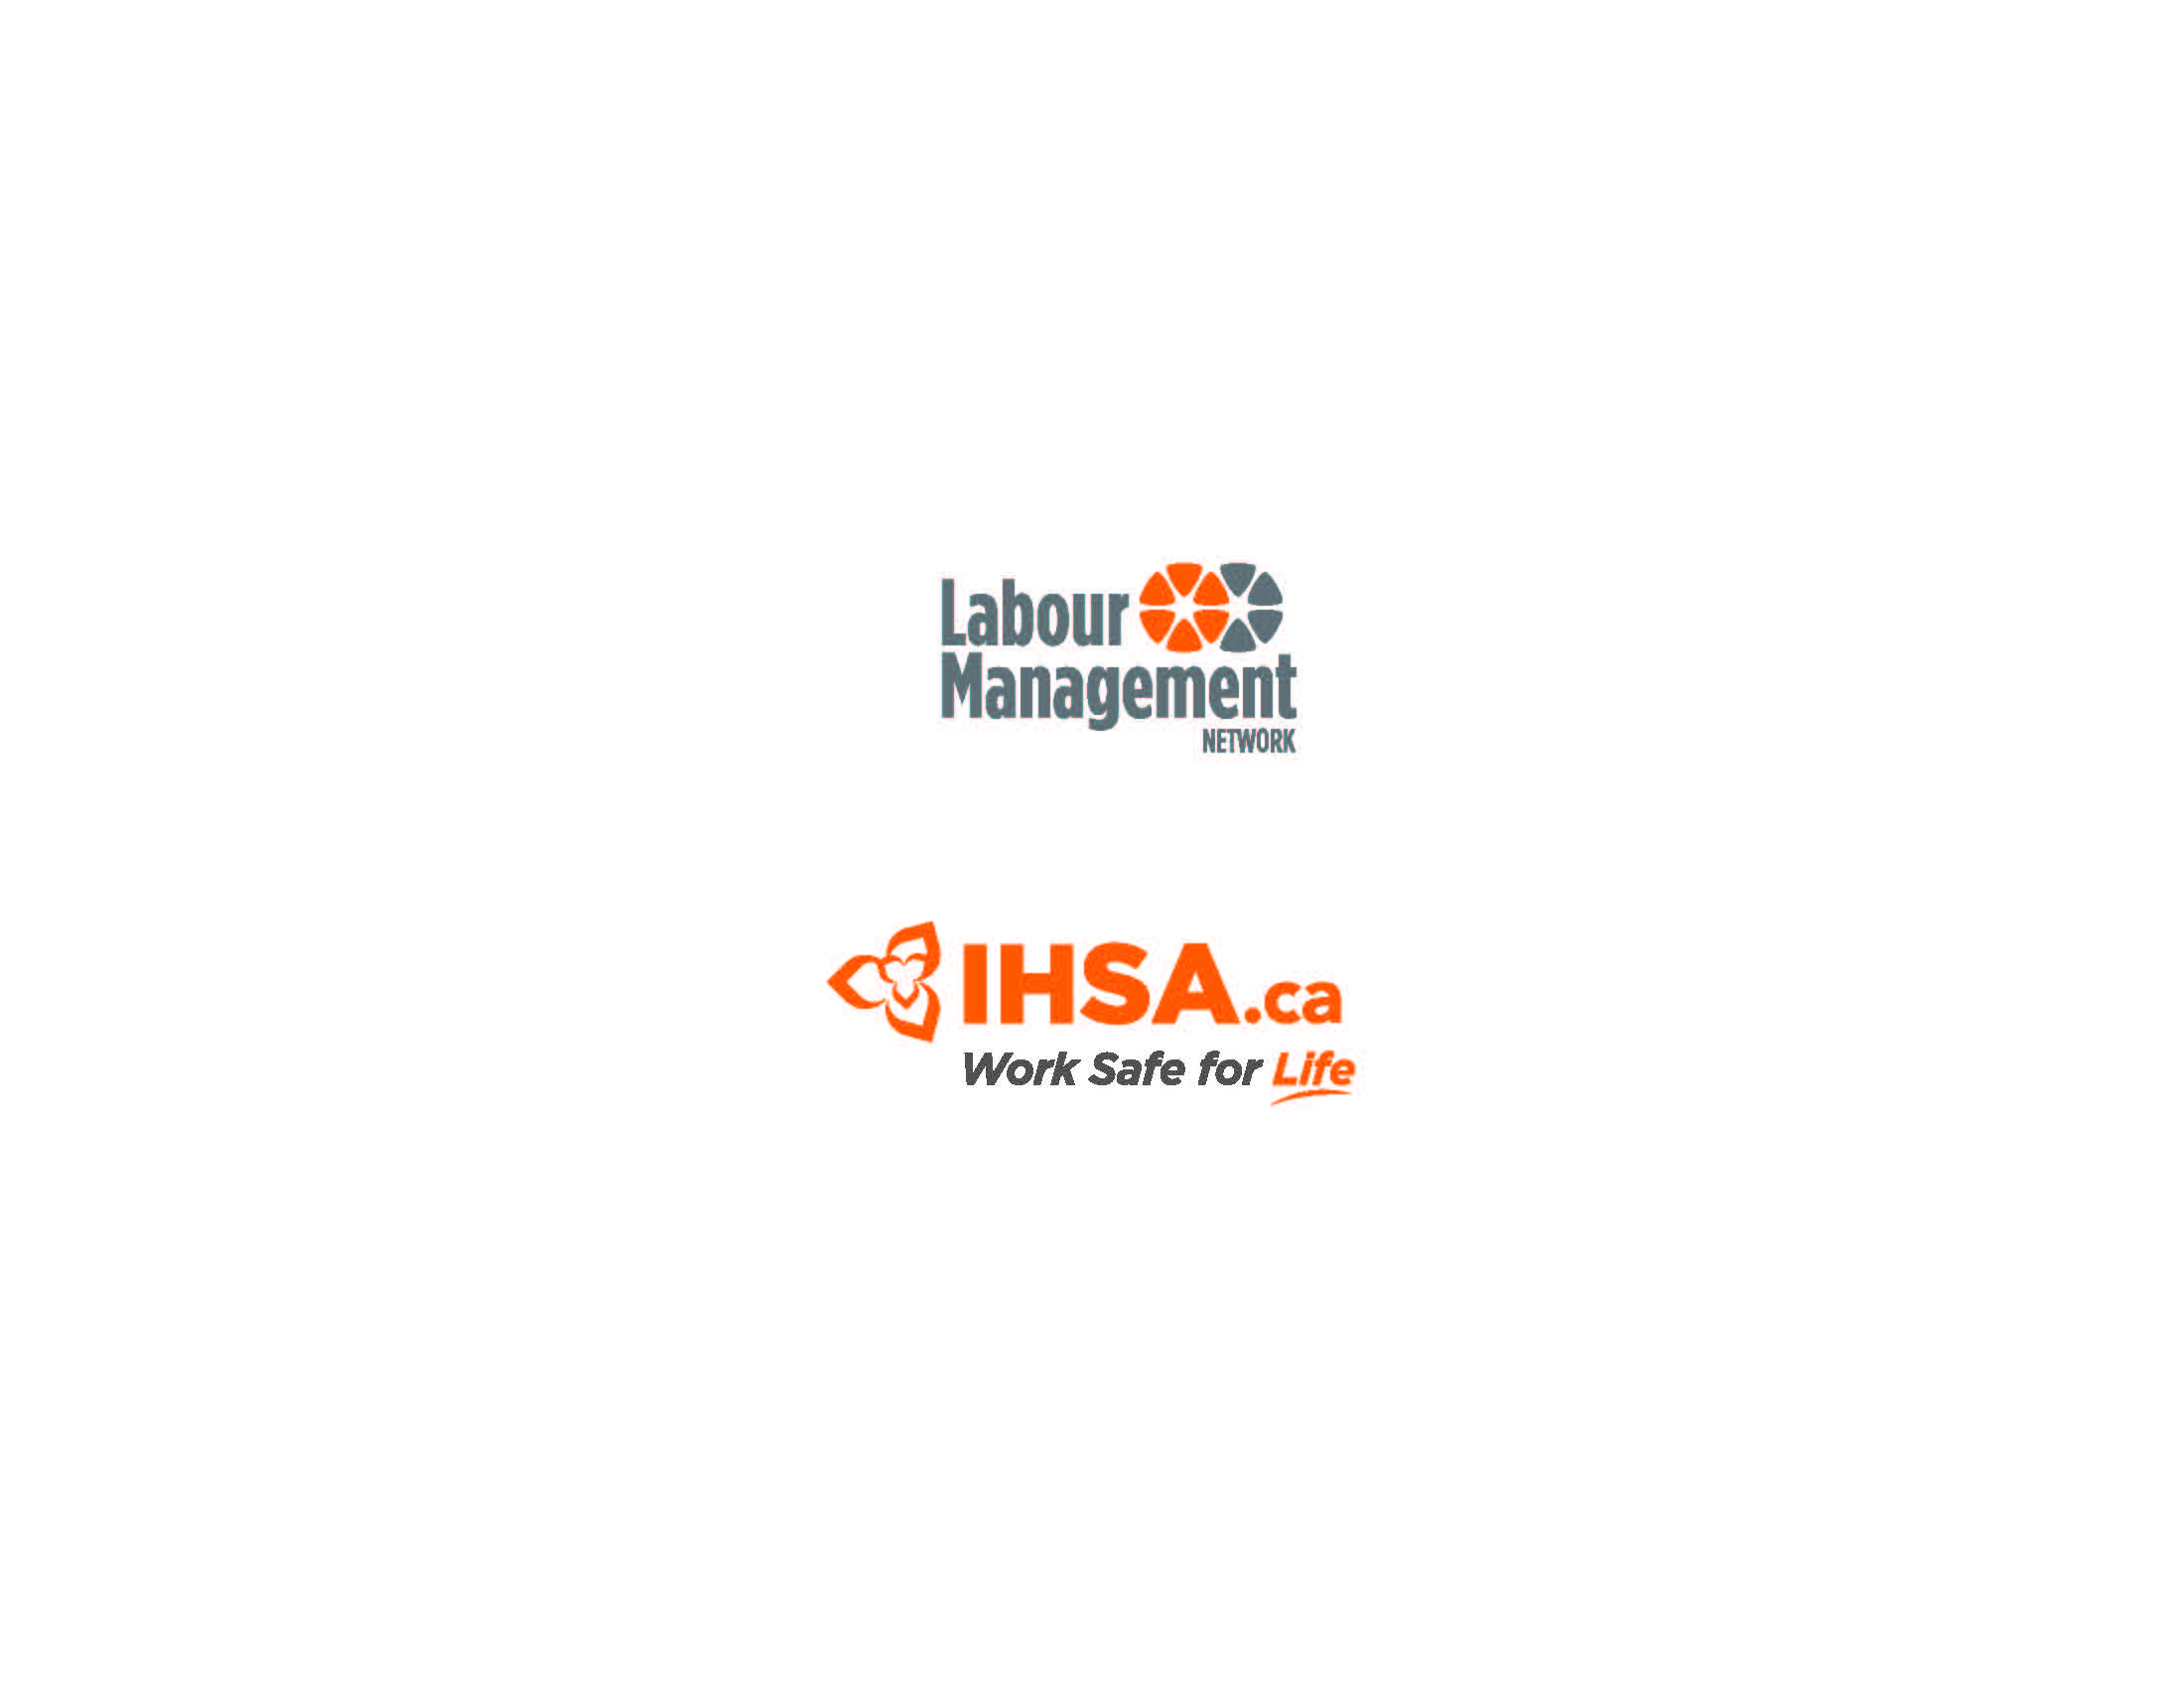 LM and IHSA logo